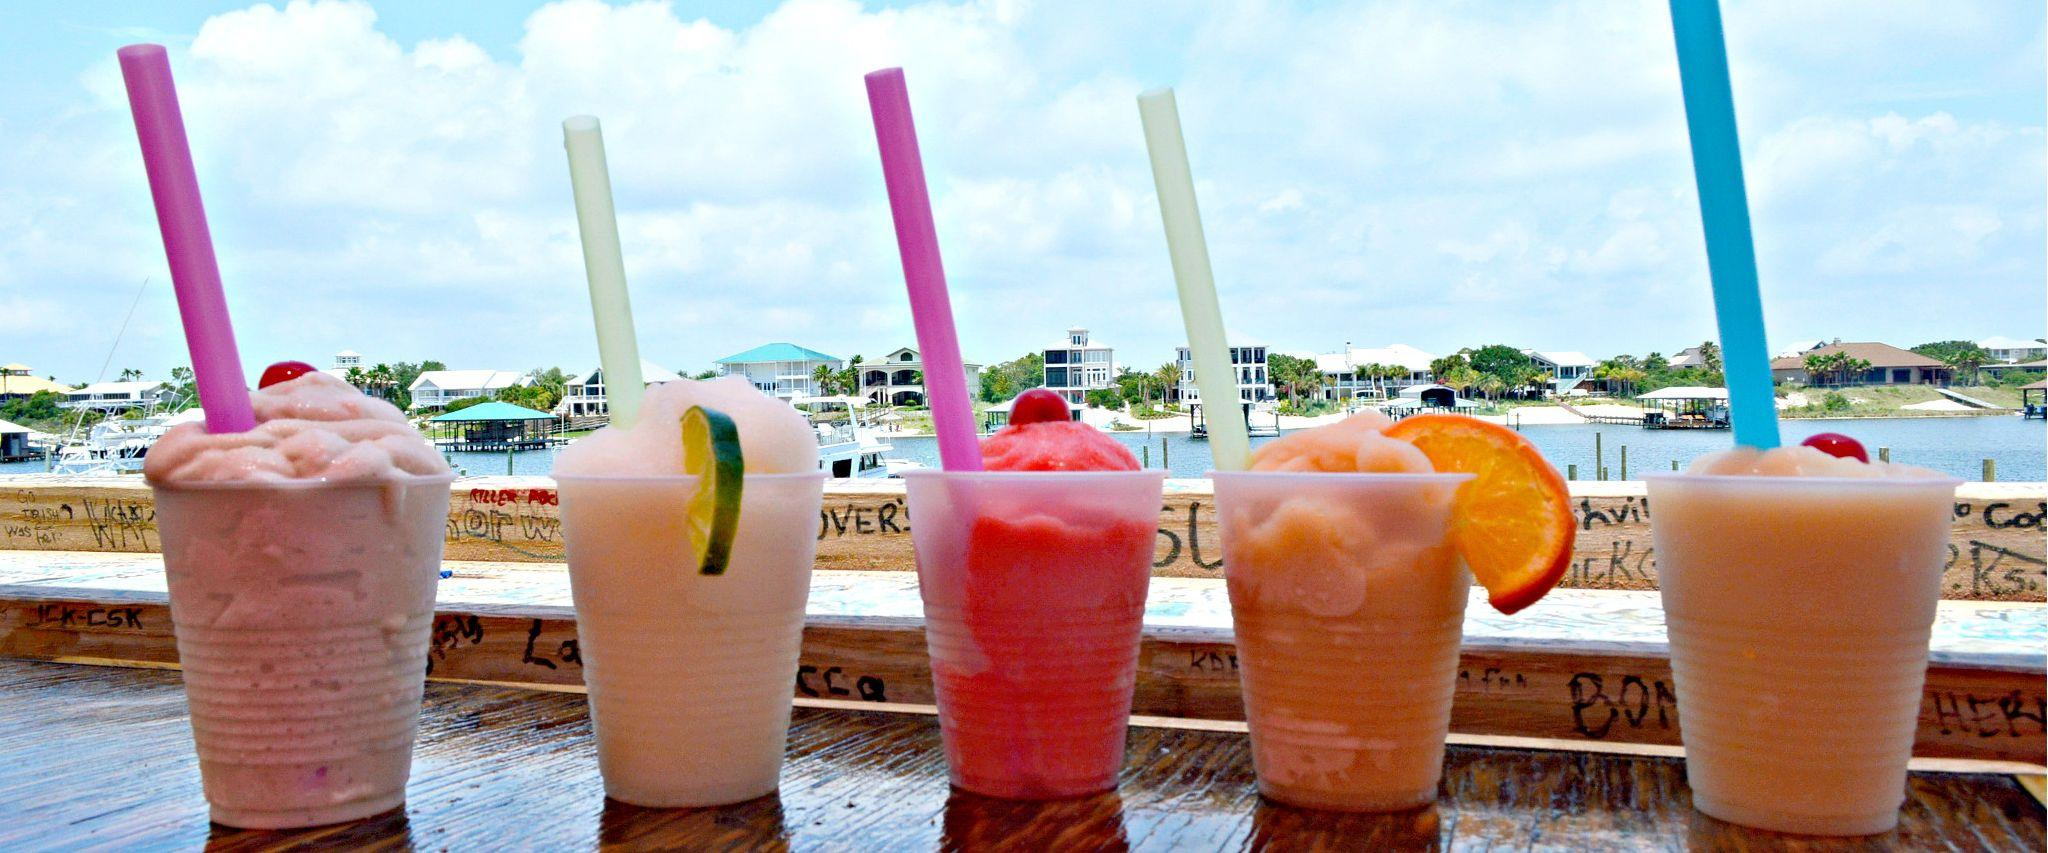 Frozen drinks overlooking the water in Orange Beach AL